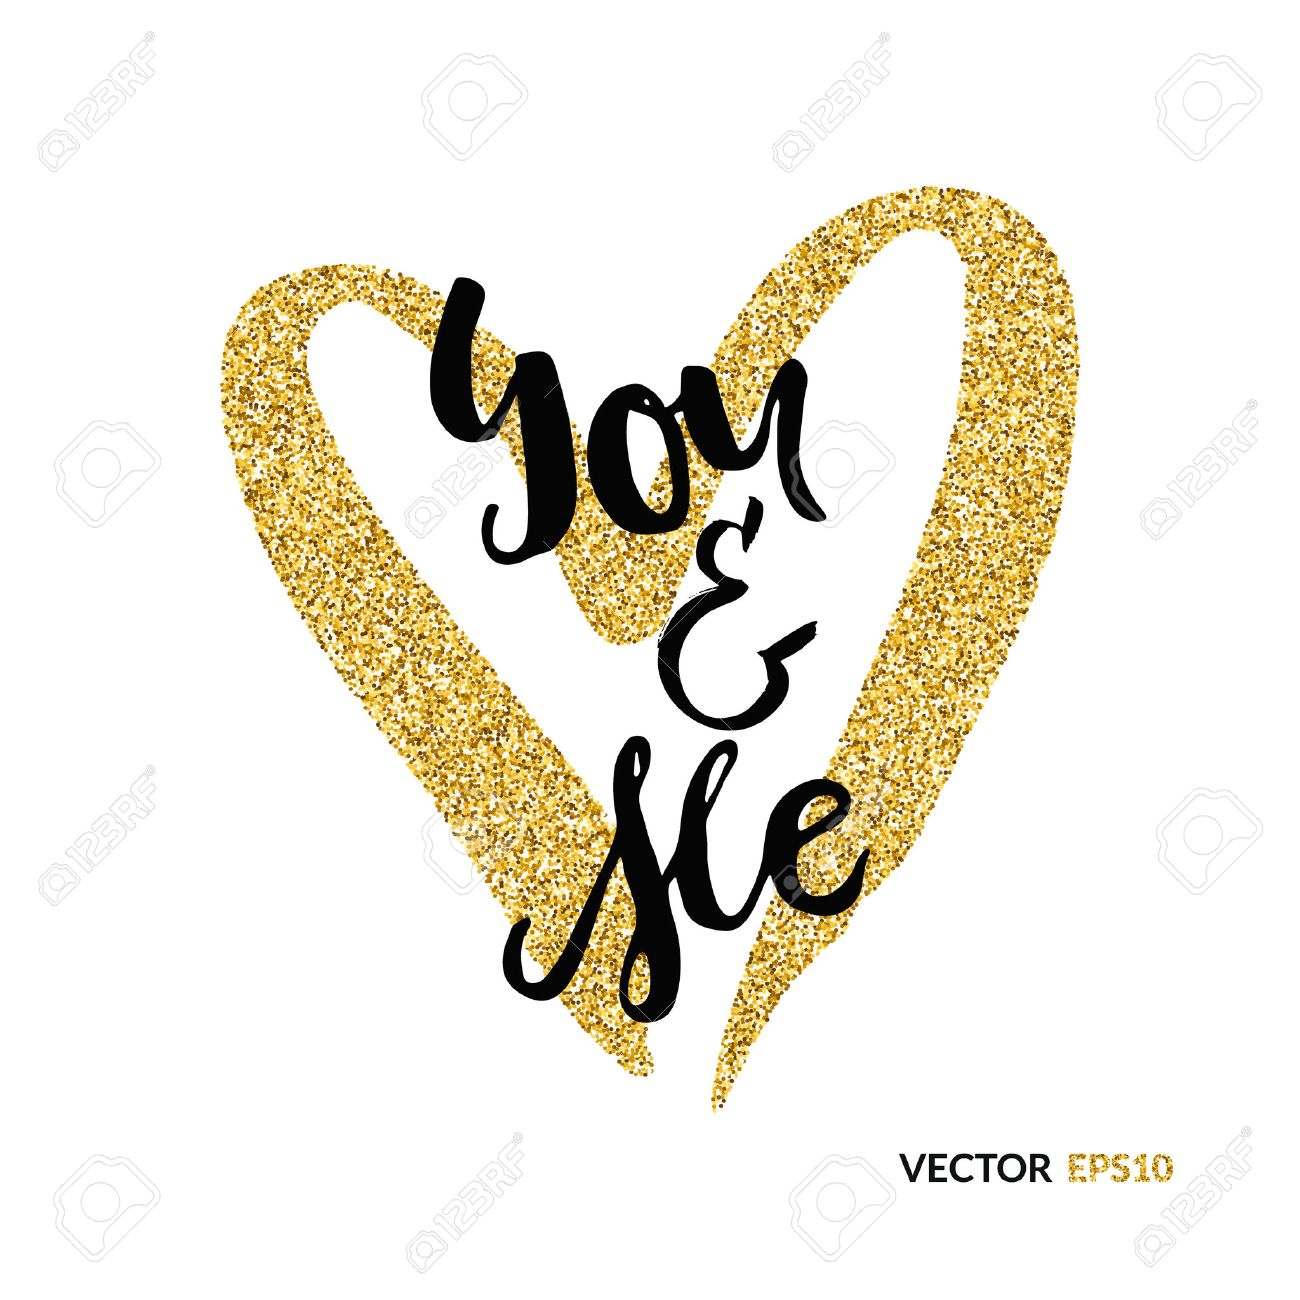 658,868 Heart Stock Vector Illustration And Royalty Free Heart Clipart